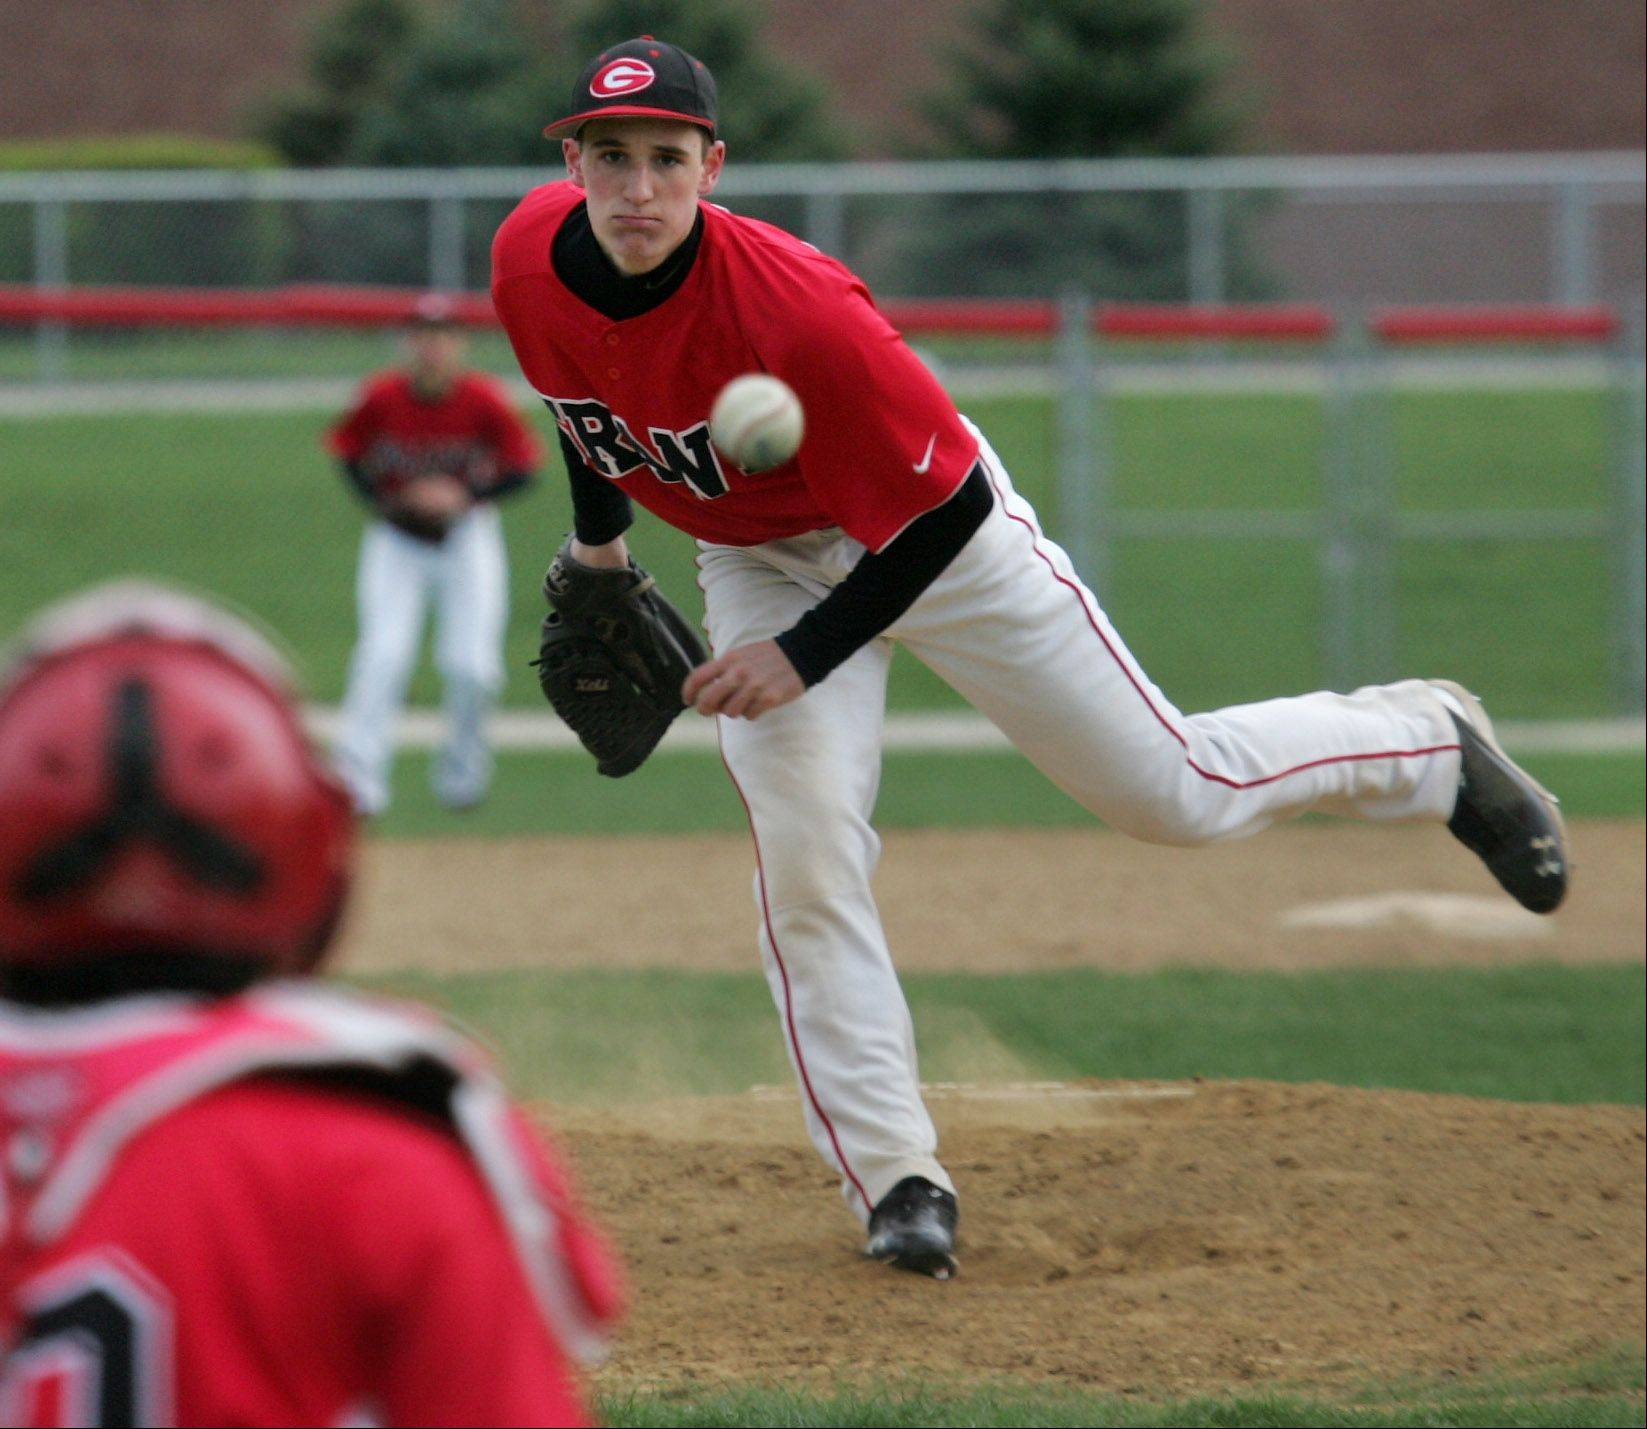 Grant pitcher Jake Ring during the boys high school baseball game between West Chicago and Grant Tuesday at Grant HIgh School.